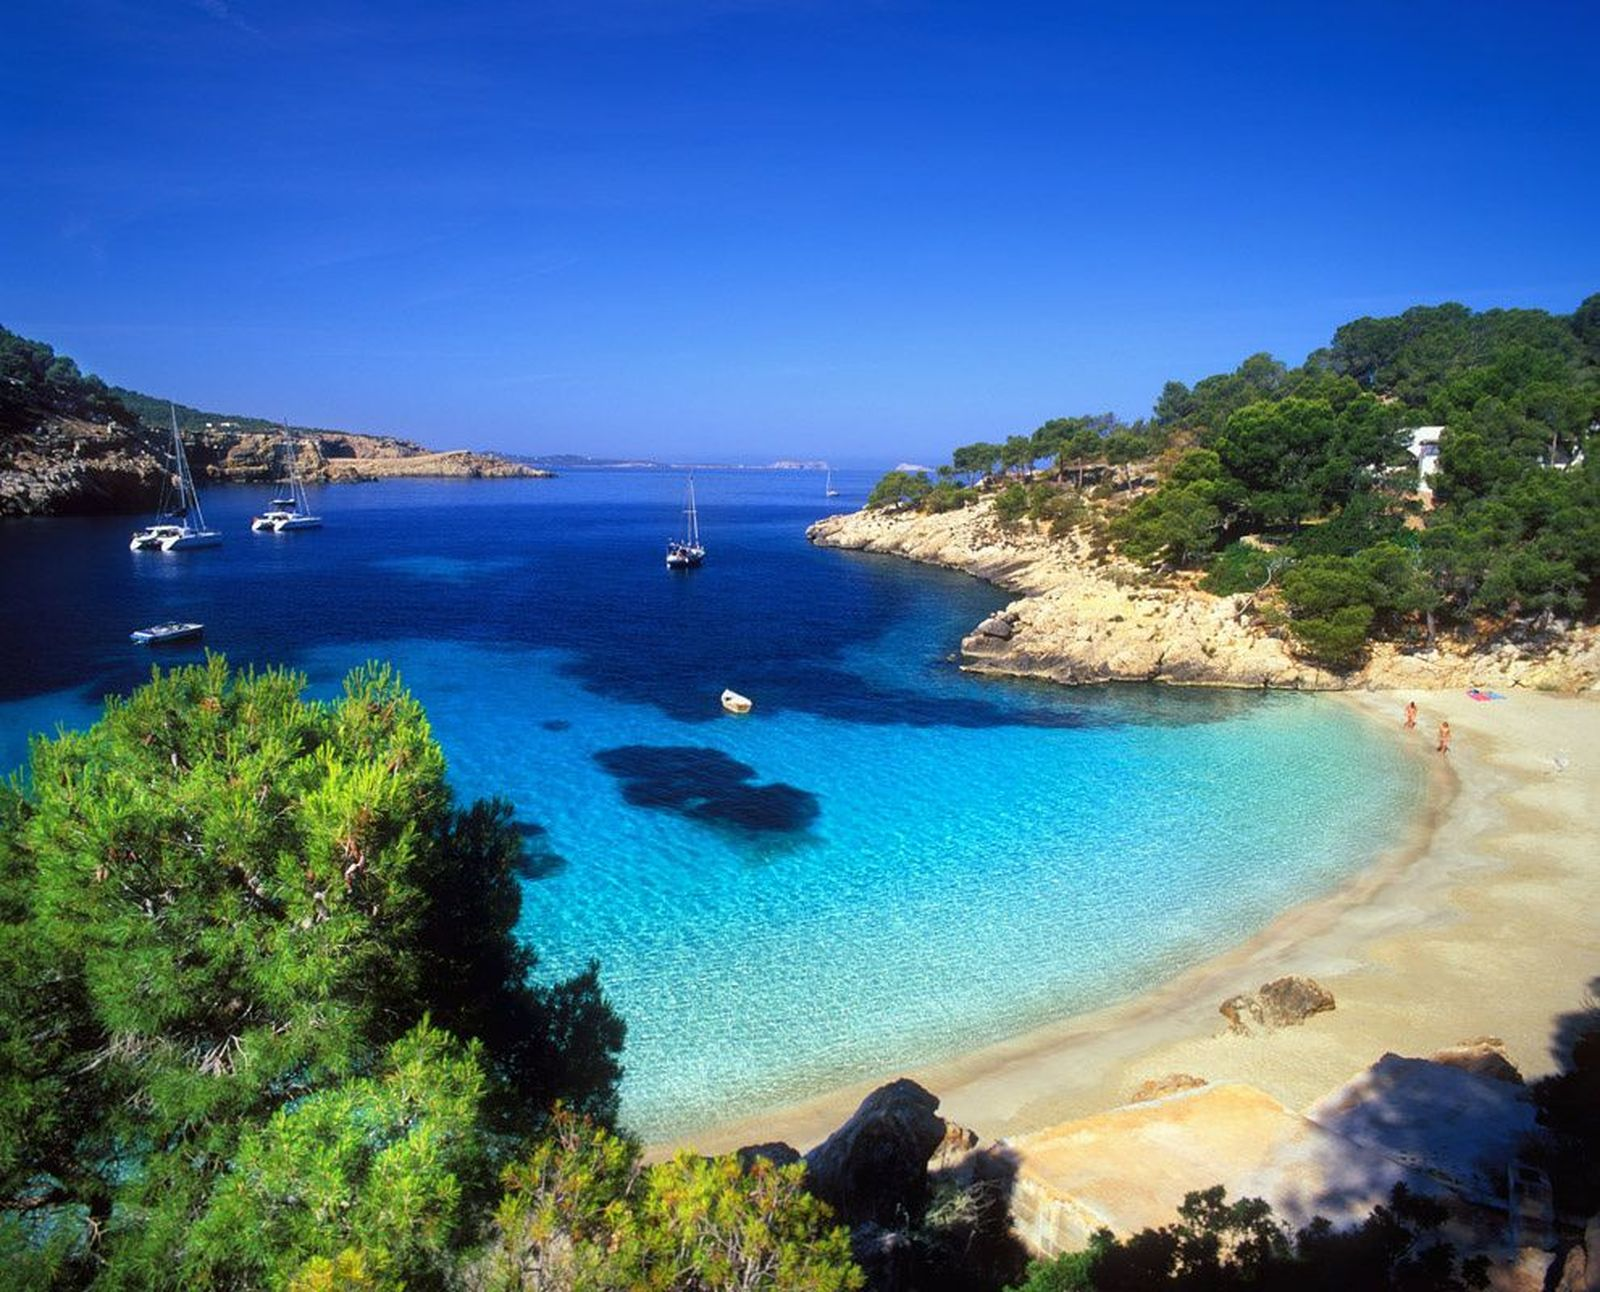 Cala Salada is one of the best sandy coves with crystal